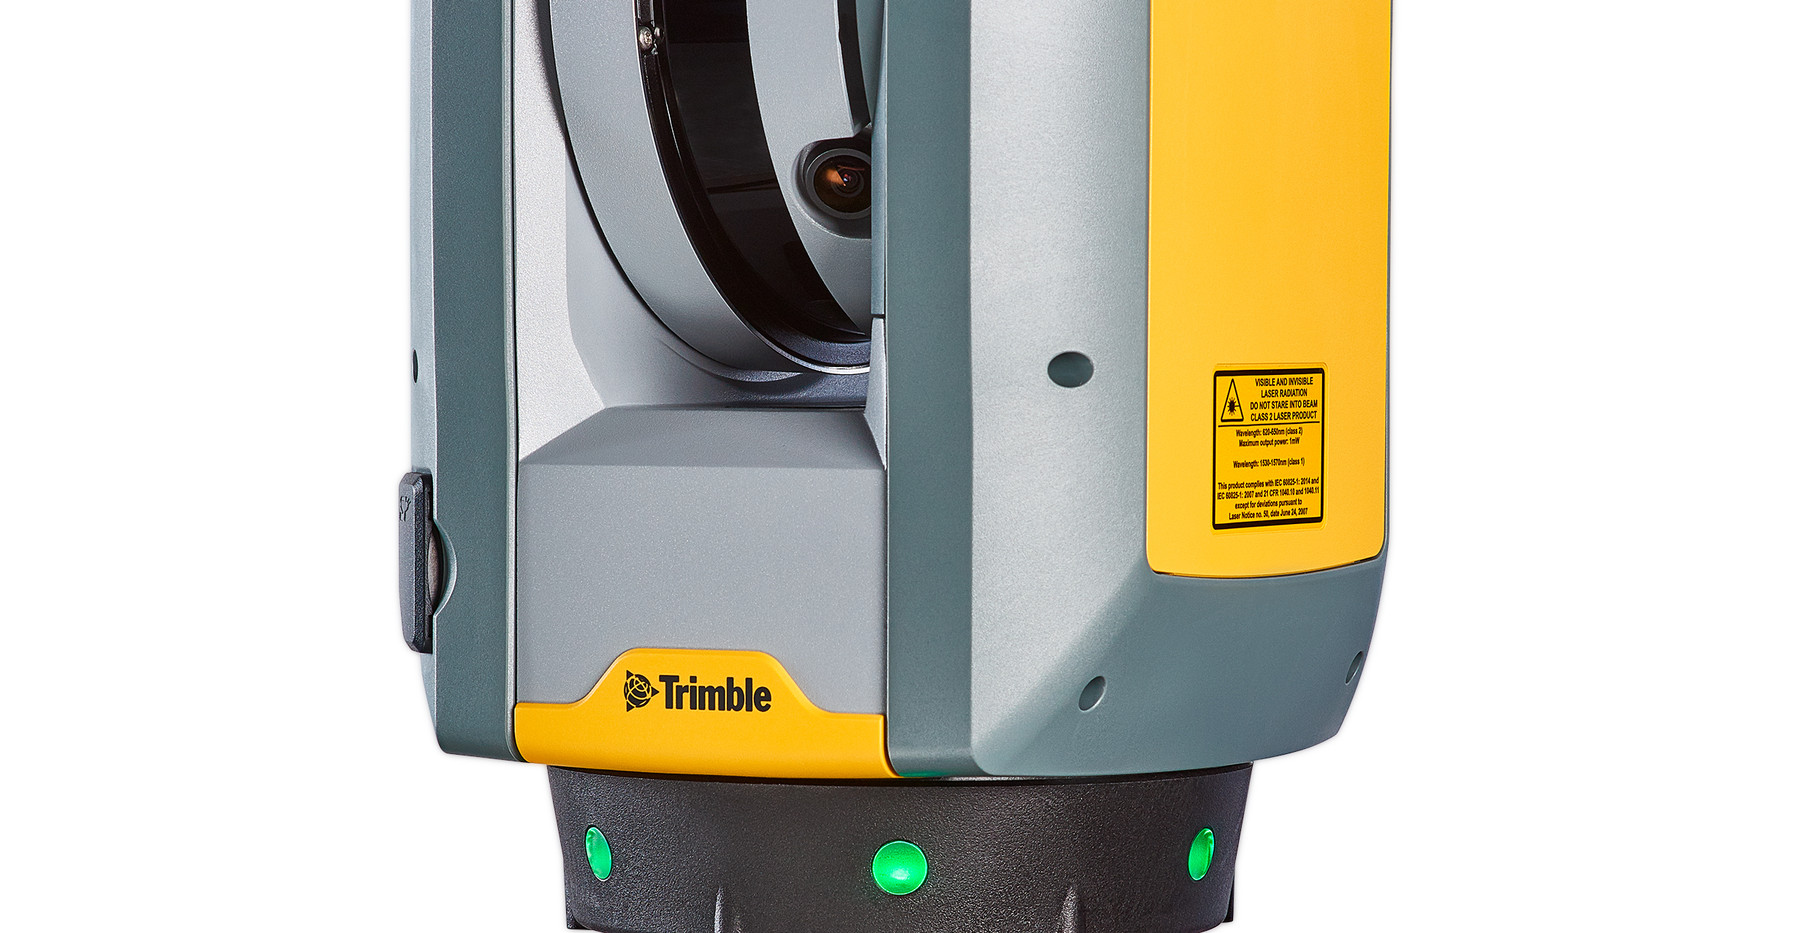 Trimble_X7_Studio_UC7831 1.jpg